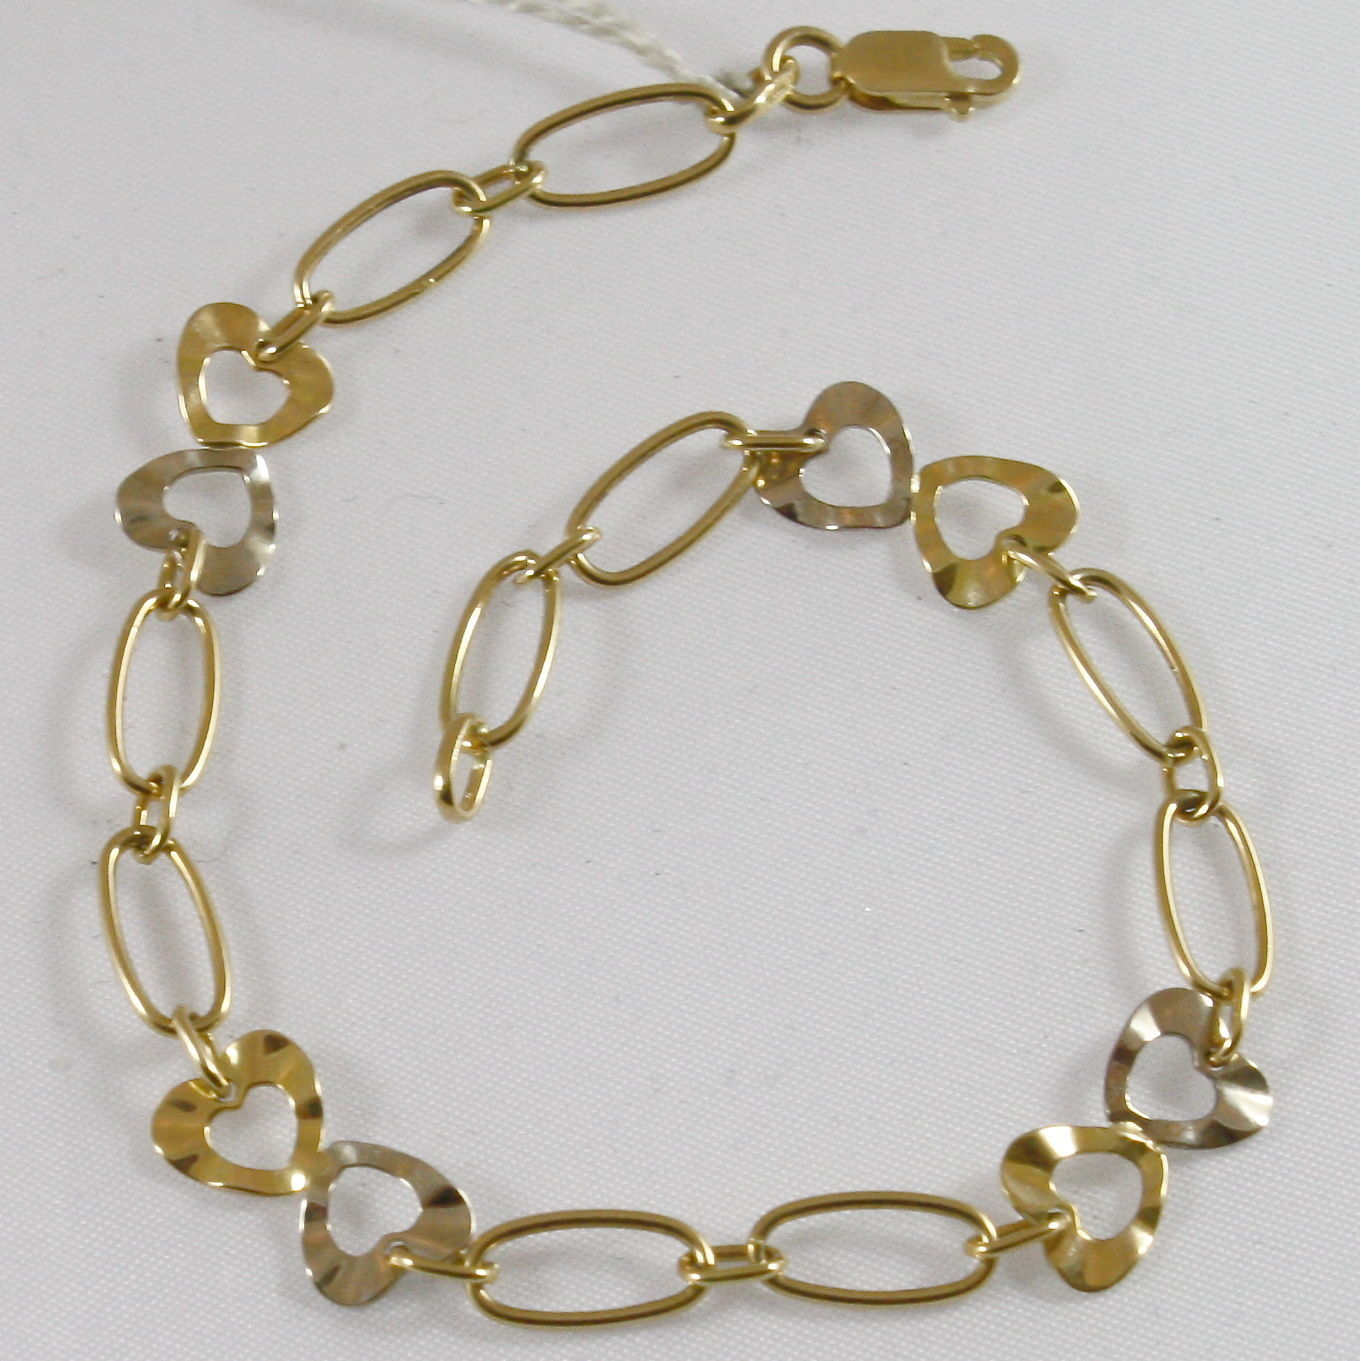 18K MULTITONE GOLD BRACELET, WHITE AND YELLOW GOLD, HEARTS, MADE IN ITALY